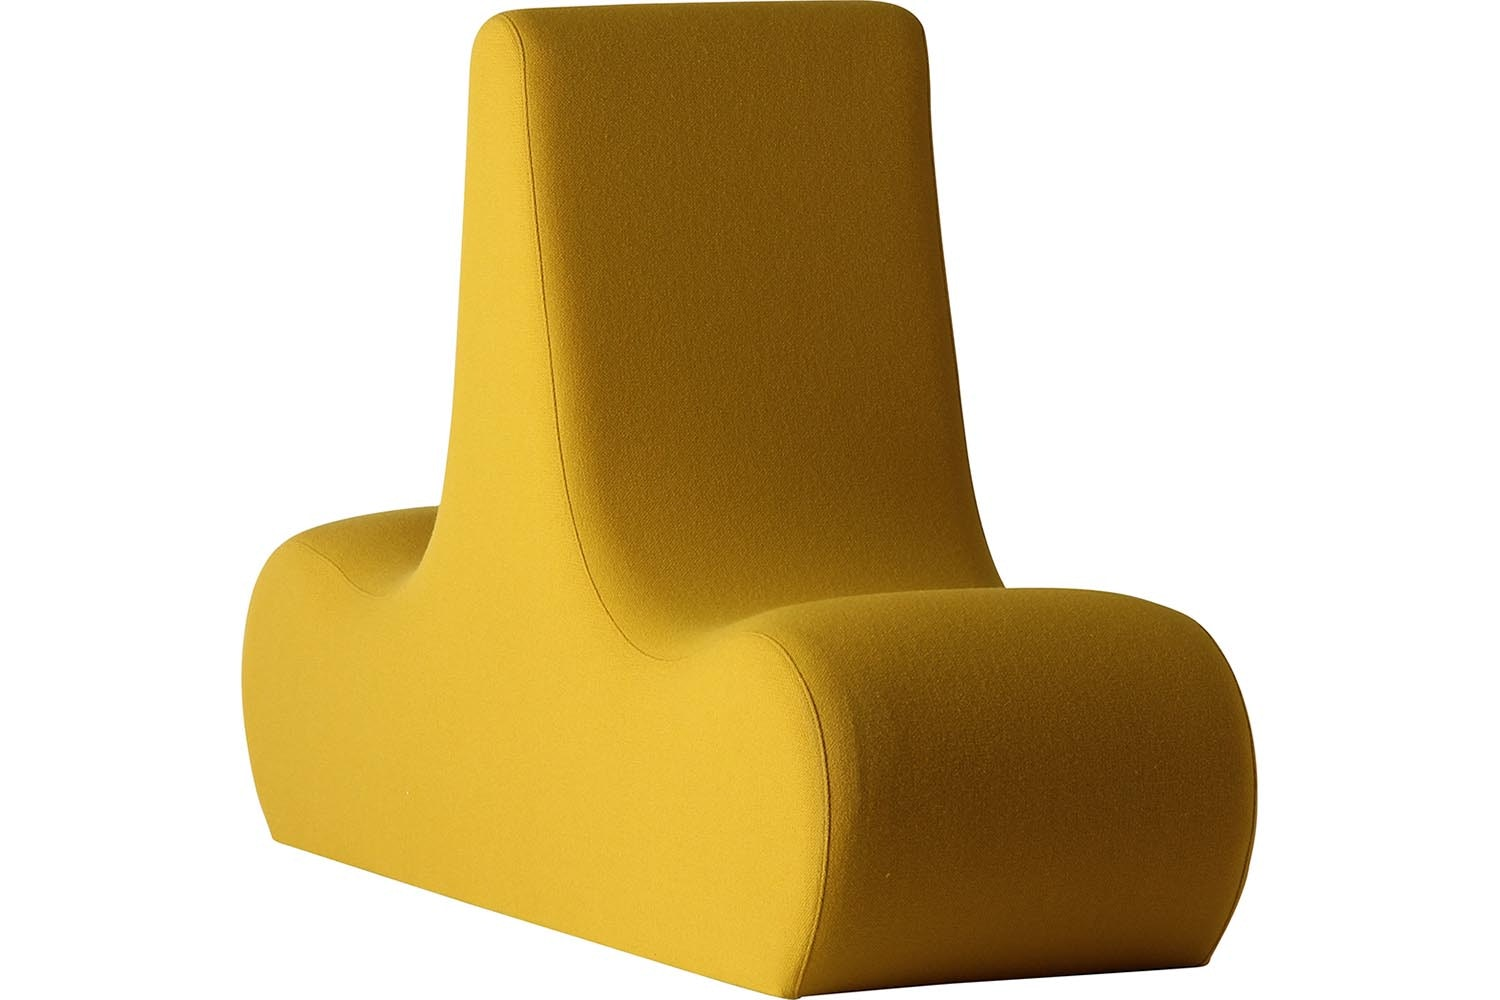 Welle 1 Lounge Seating by Verner Panton for Verpan